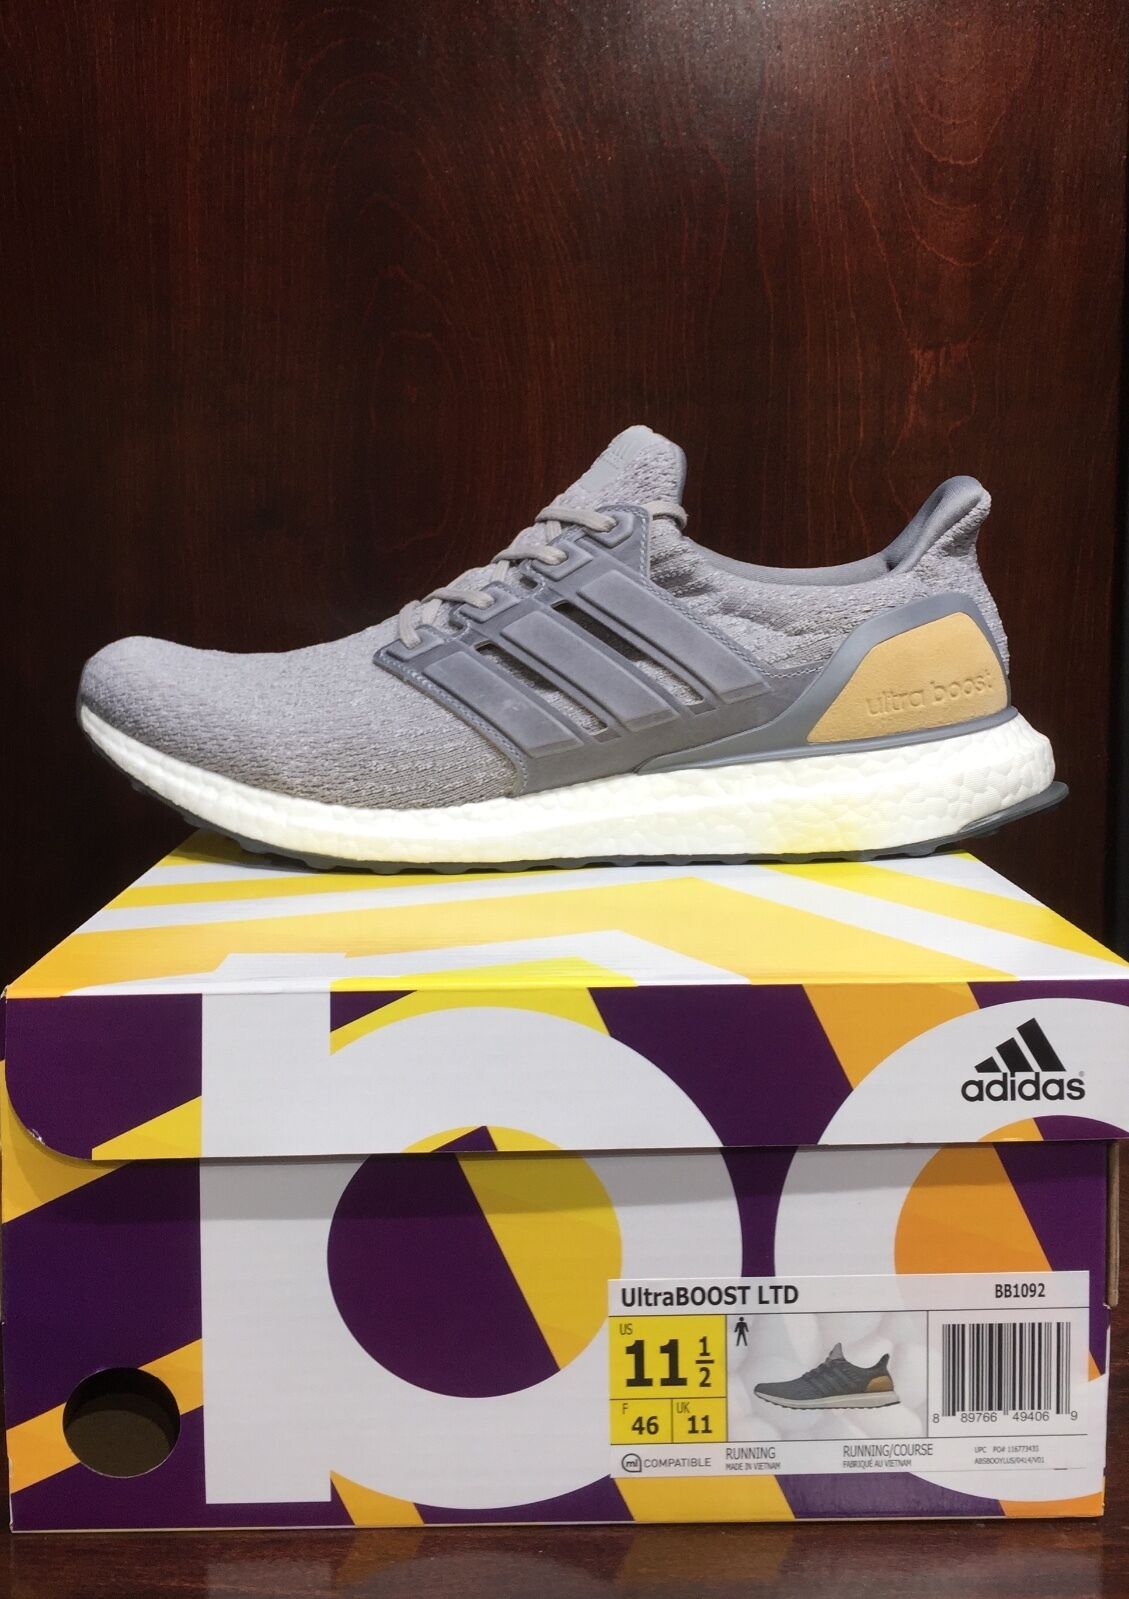 Adidas ultraboost pelle ltd